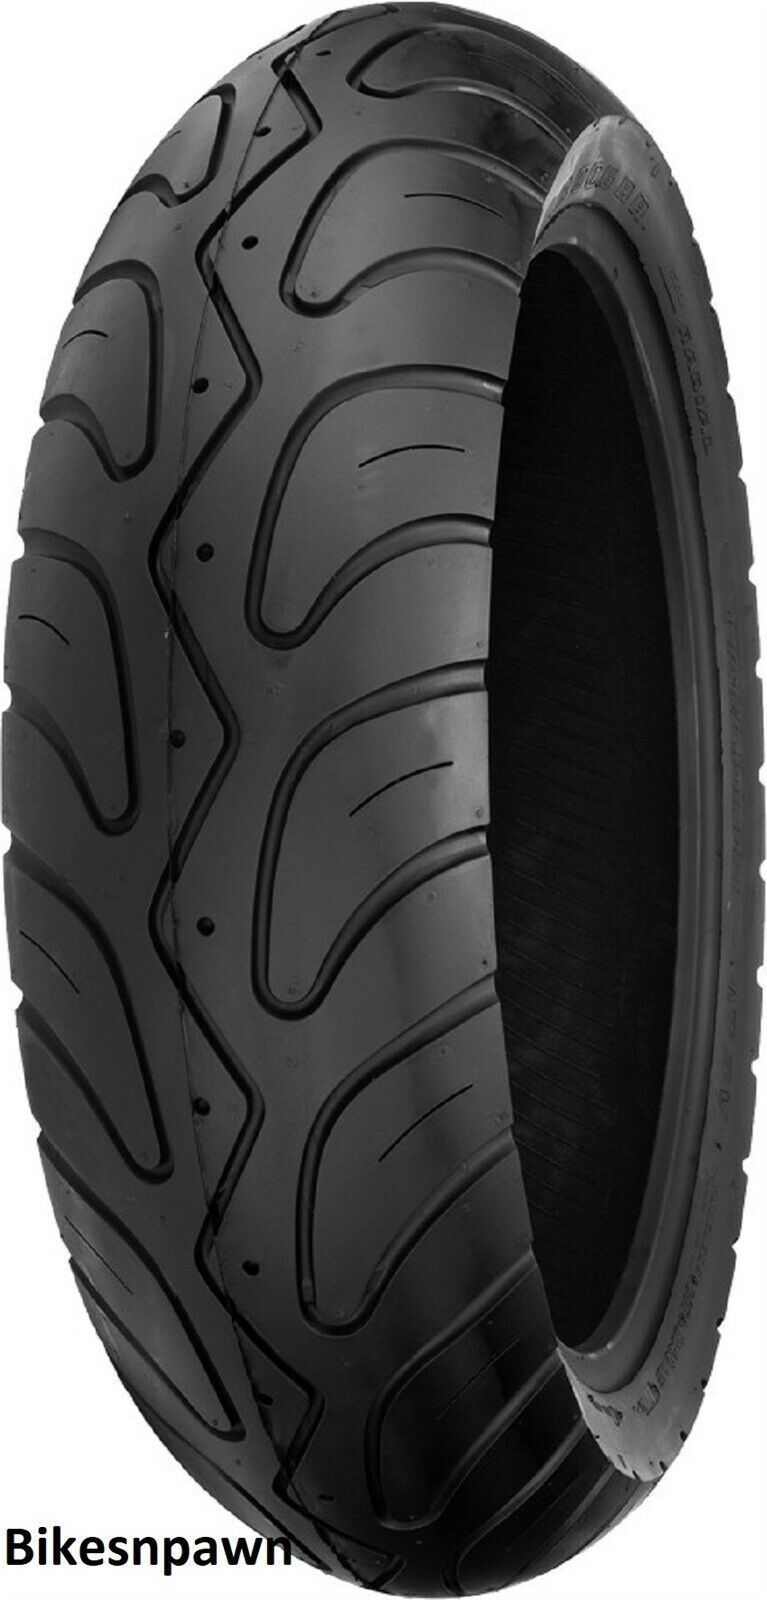 New Shinko 006 Podium Radial 170/60R18 Rear Motorcycle Performance Tire 73V